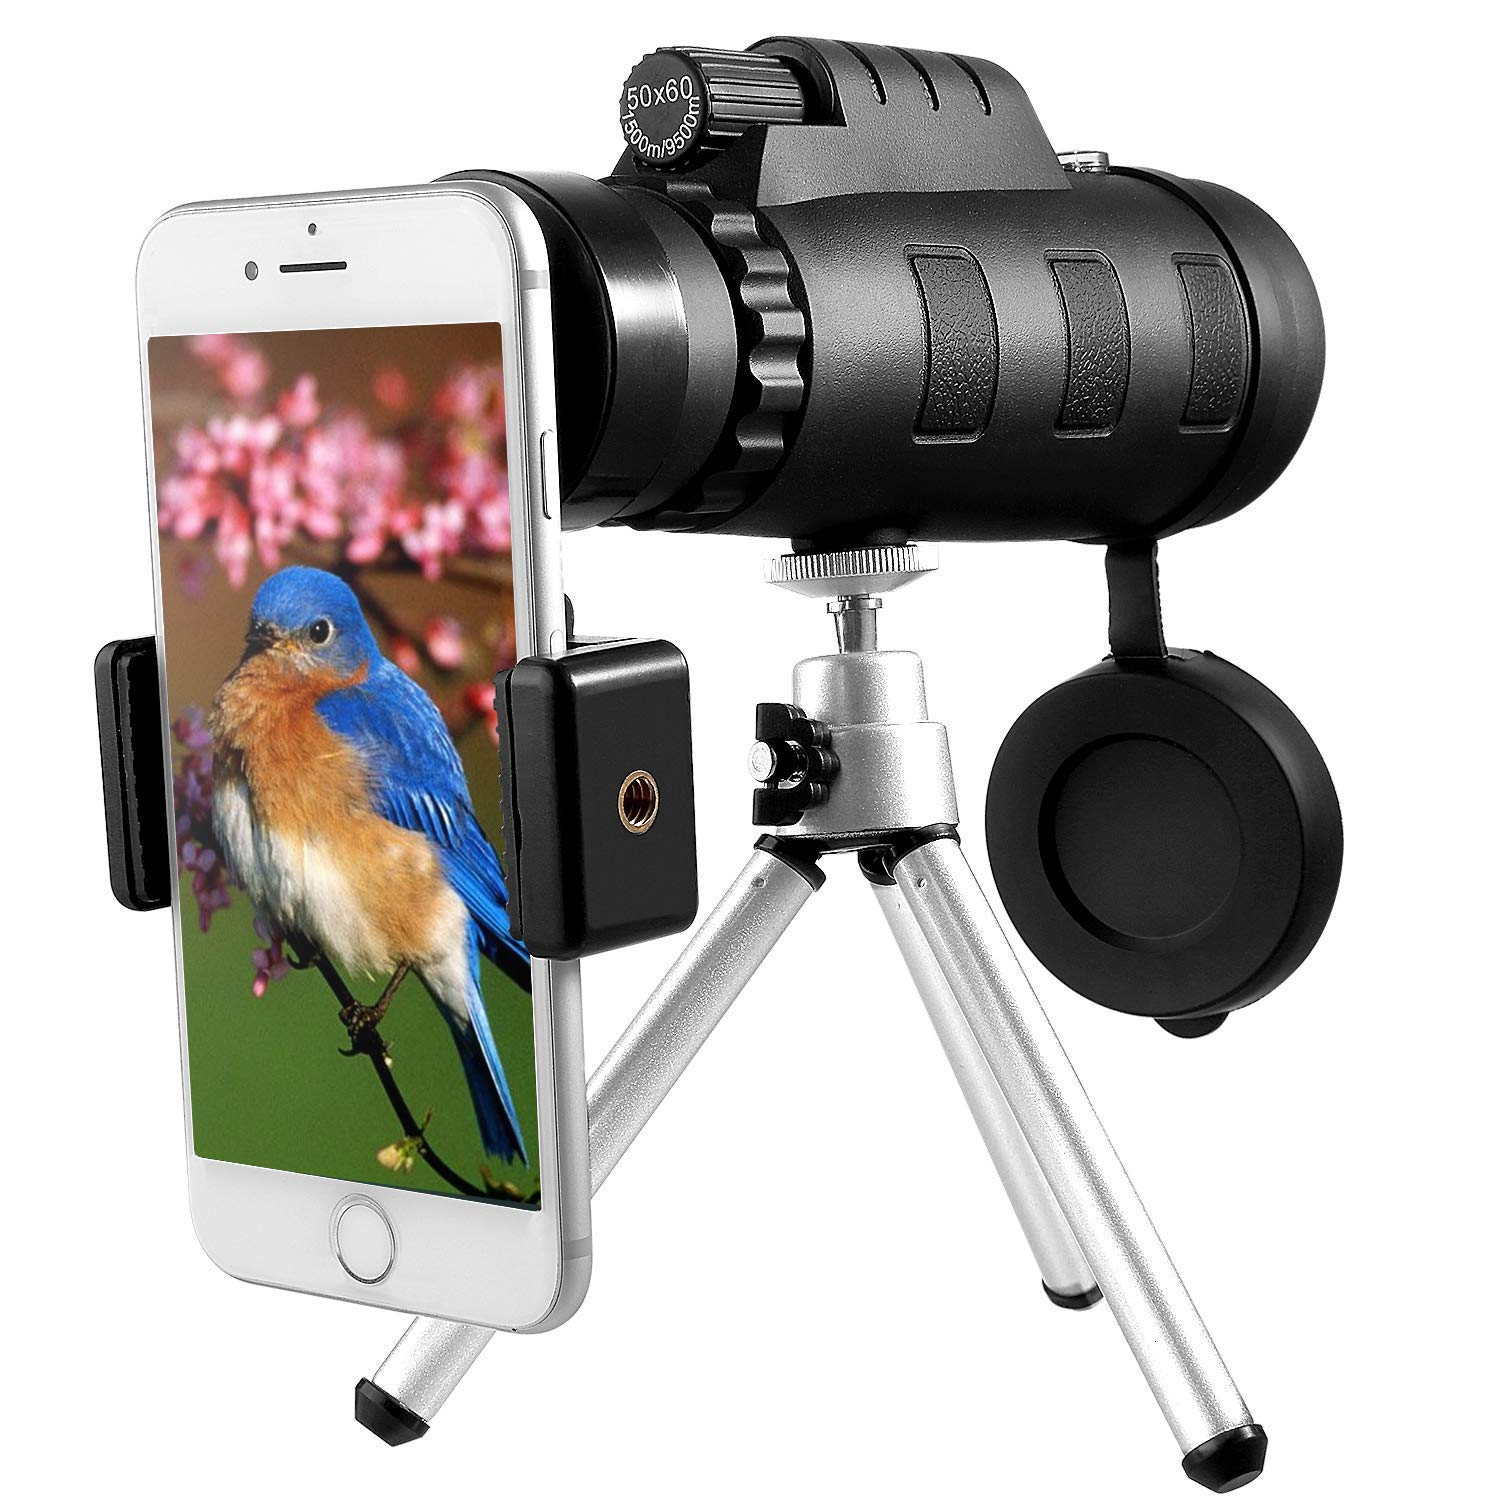 Monocular Telescope, Esolom 50X60 High Power HD Monocular with Smartphone Holder & Tripod - [Upgrade] Waterproof Monocular with Durable and Clear FMC BAK4 Prism Dual Focus for Bird Watching, Camping by ESOLOM